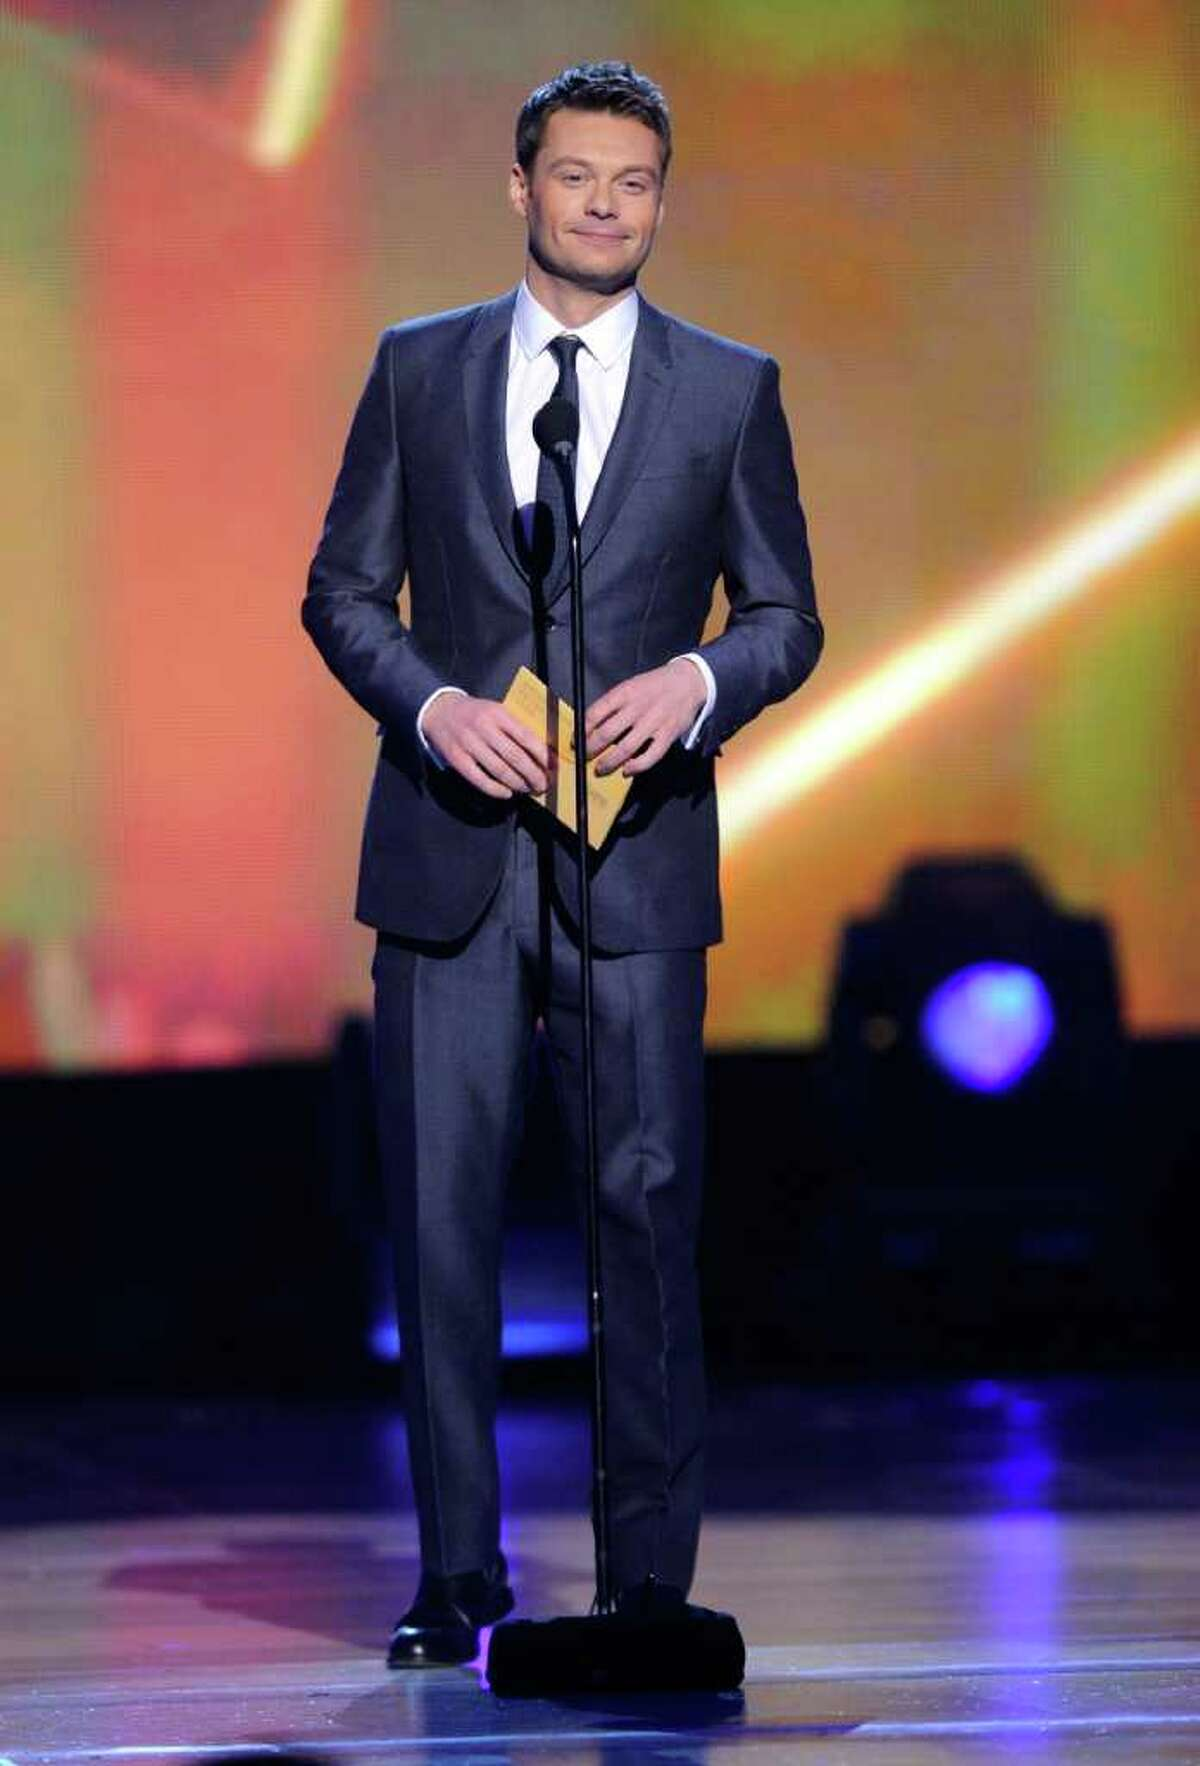 LAS VEGAS, NV - APRIL 03: Ryan Seacrest speaks onstage at the 46th Annual Academy Of Country Music Awards held at the MGM Grand Garden Arena on April 3, 2011 in Las Vegas, Nevada. (Photo by Ethan Miller/Getty Images) *** Local Caption *** Ryan Seacrest